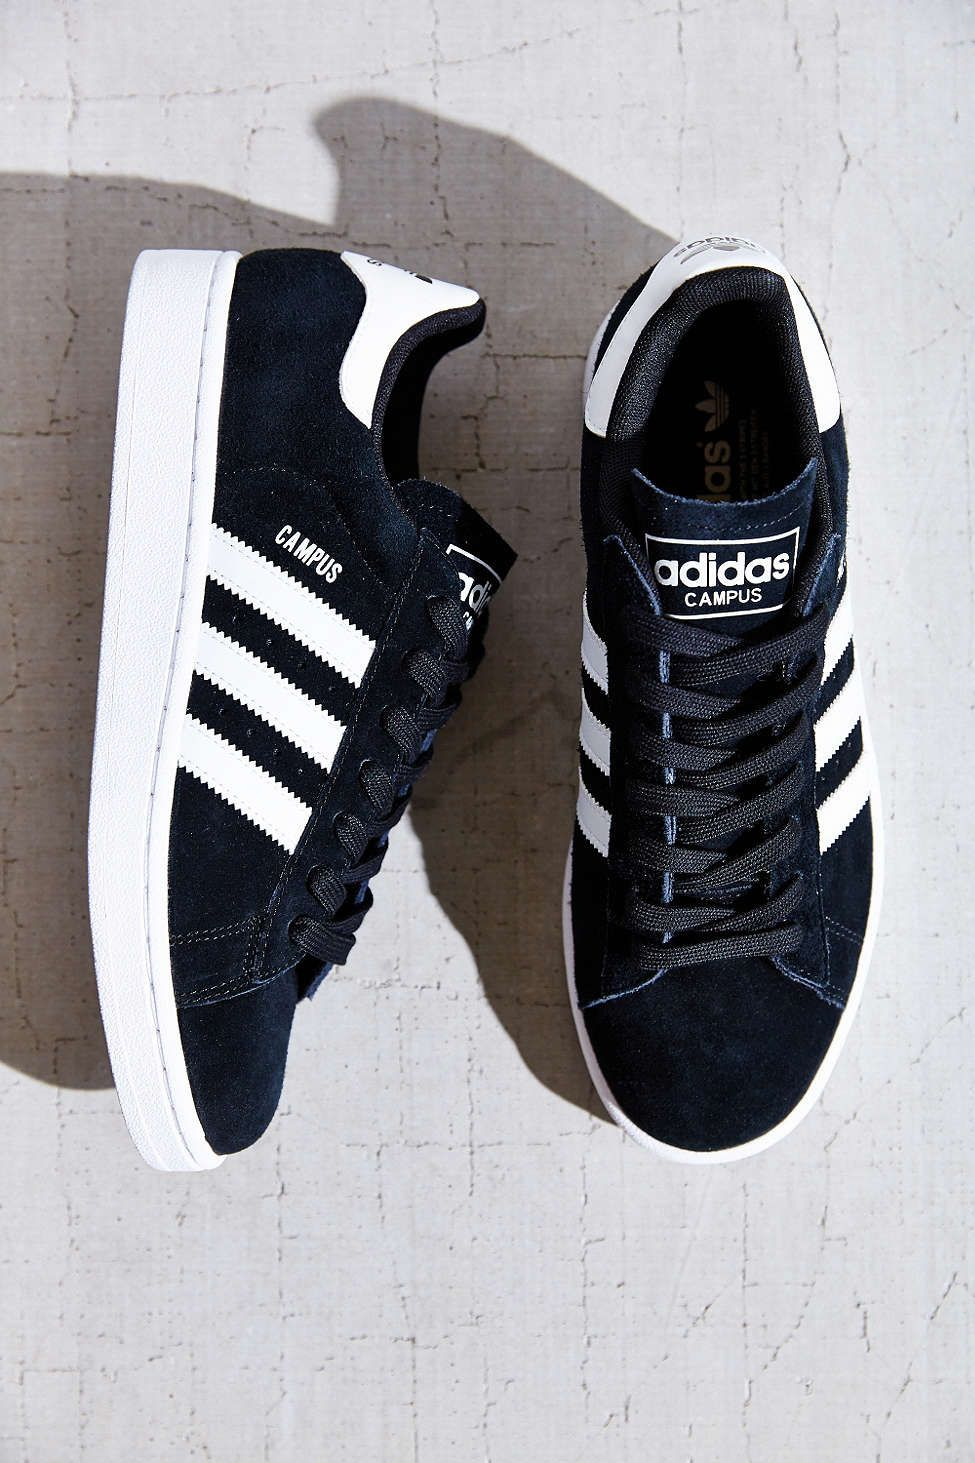 Pinterest Tenis Adidas Shoes Sneaker 2 Campus Originals qwqFP1